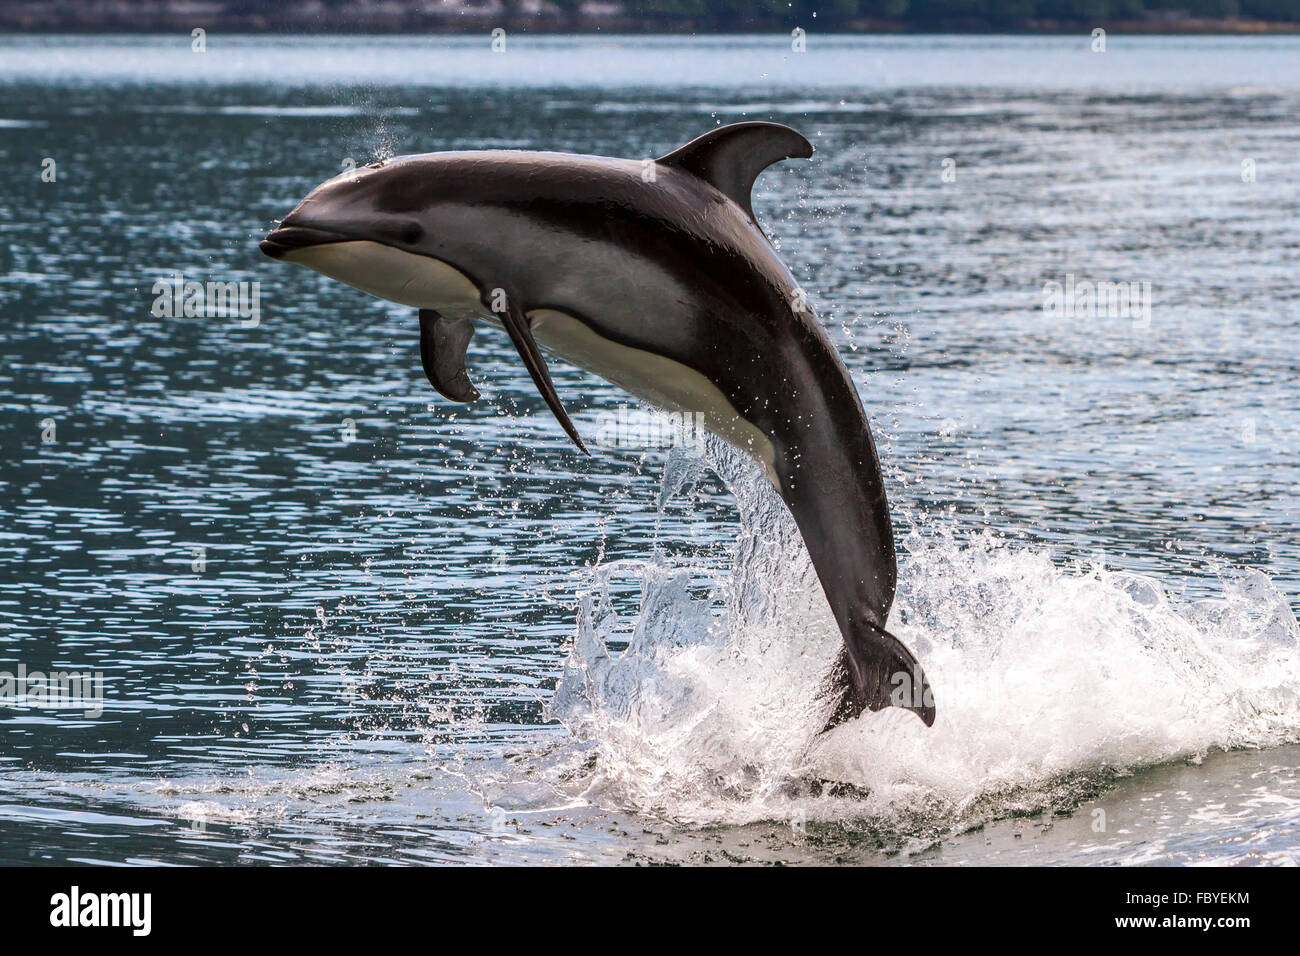 Pacific White Sided Dolphin (Lagenorhynchus obliquidens) jumping in Broughton Archipelago Marine Park in British - Stock Image